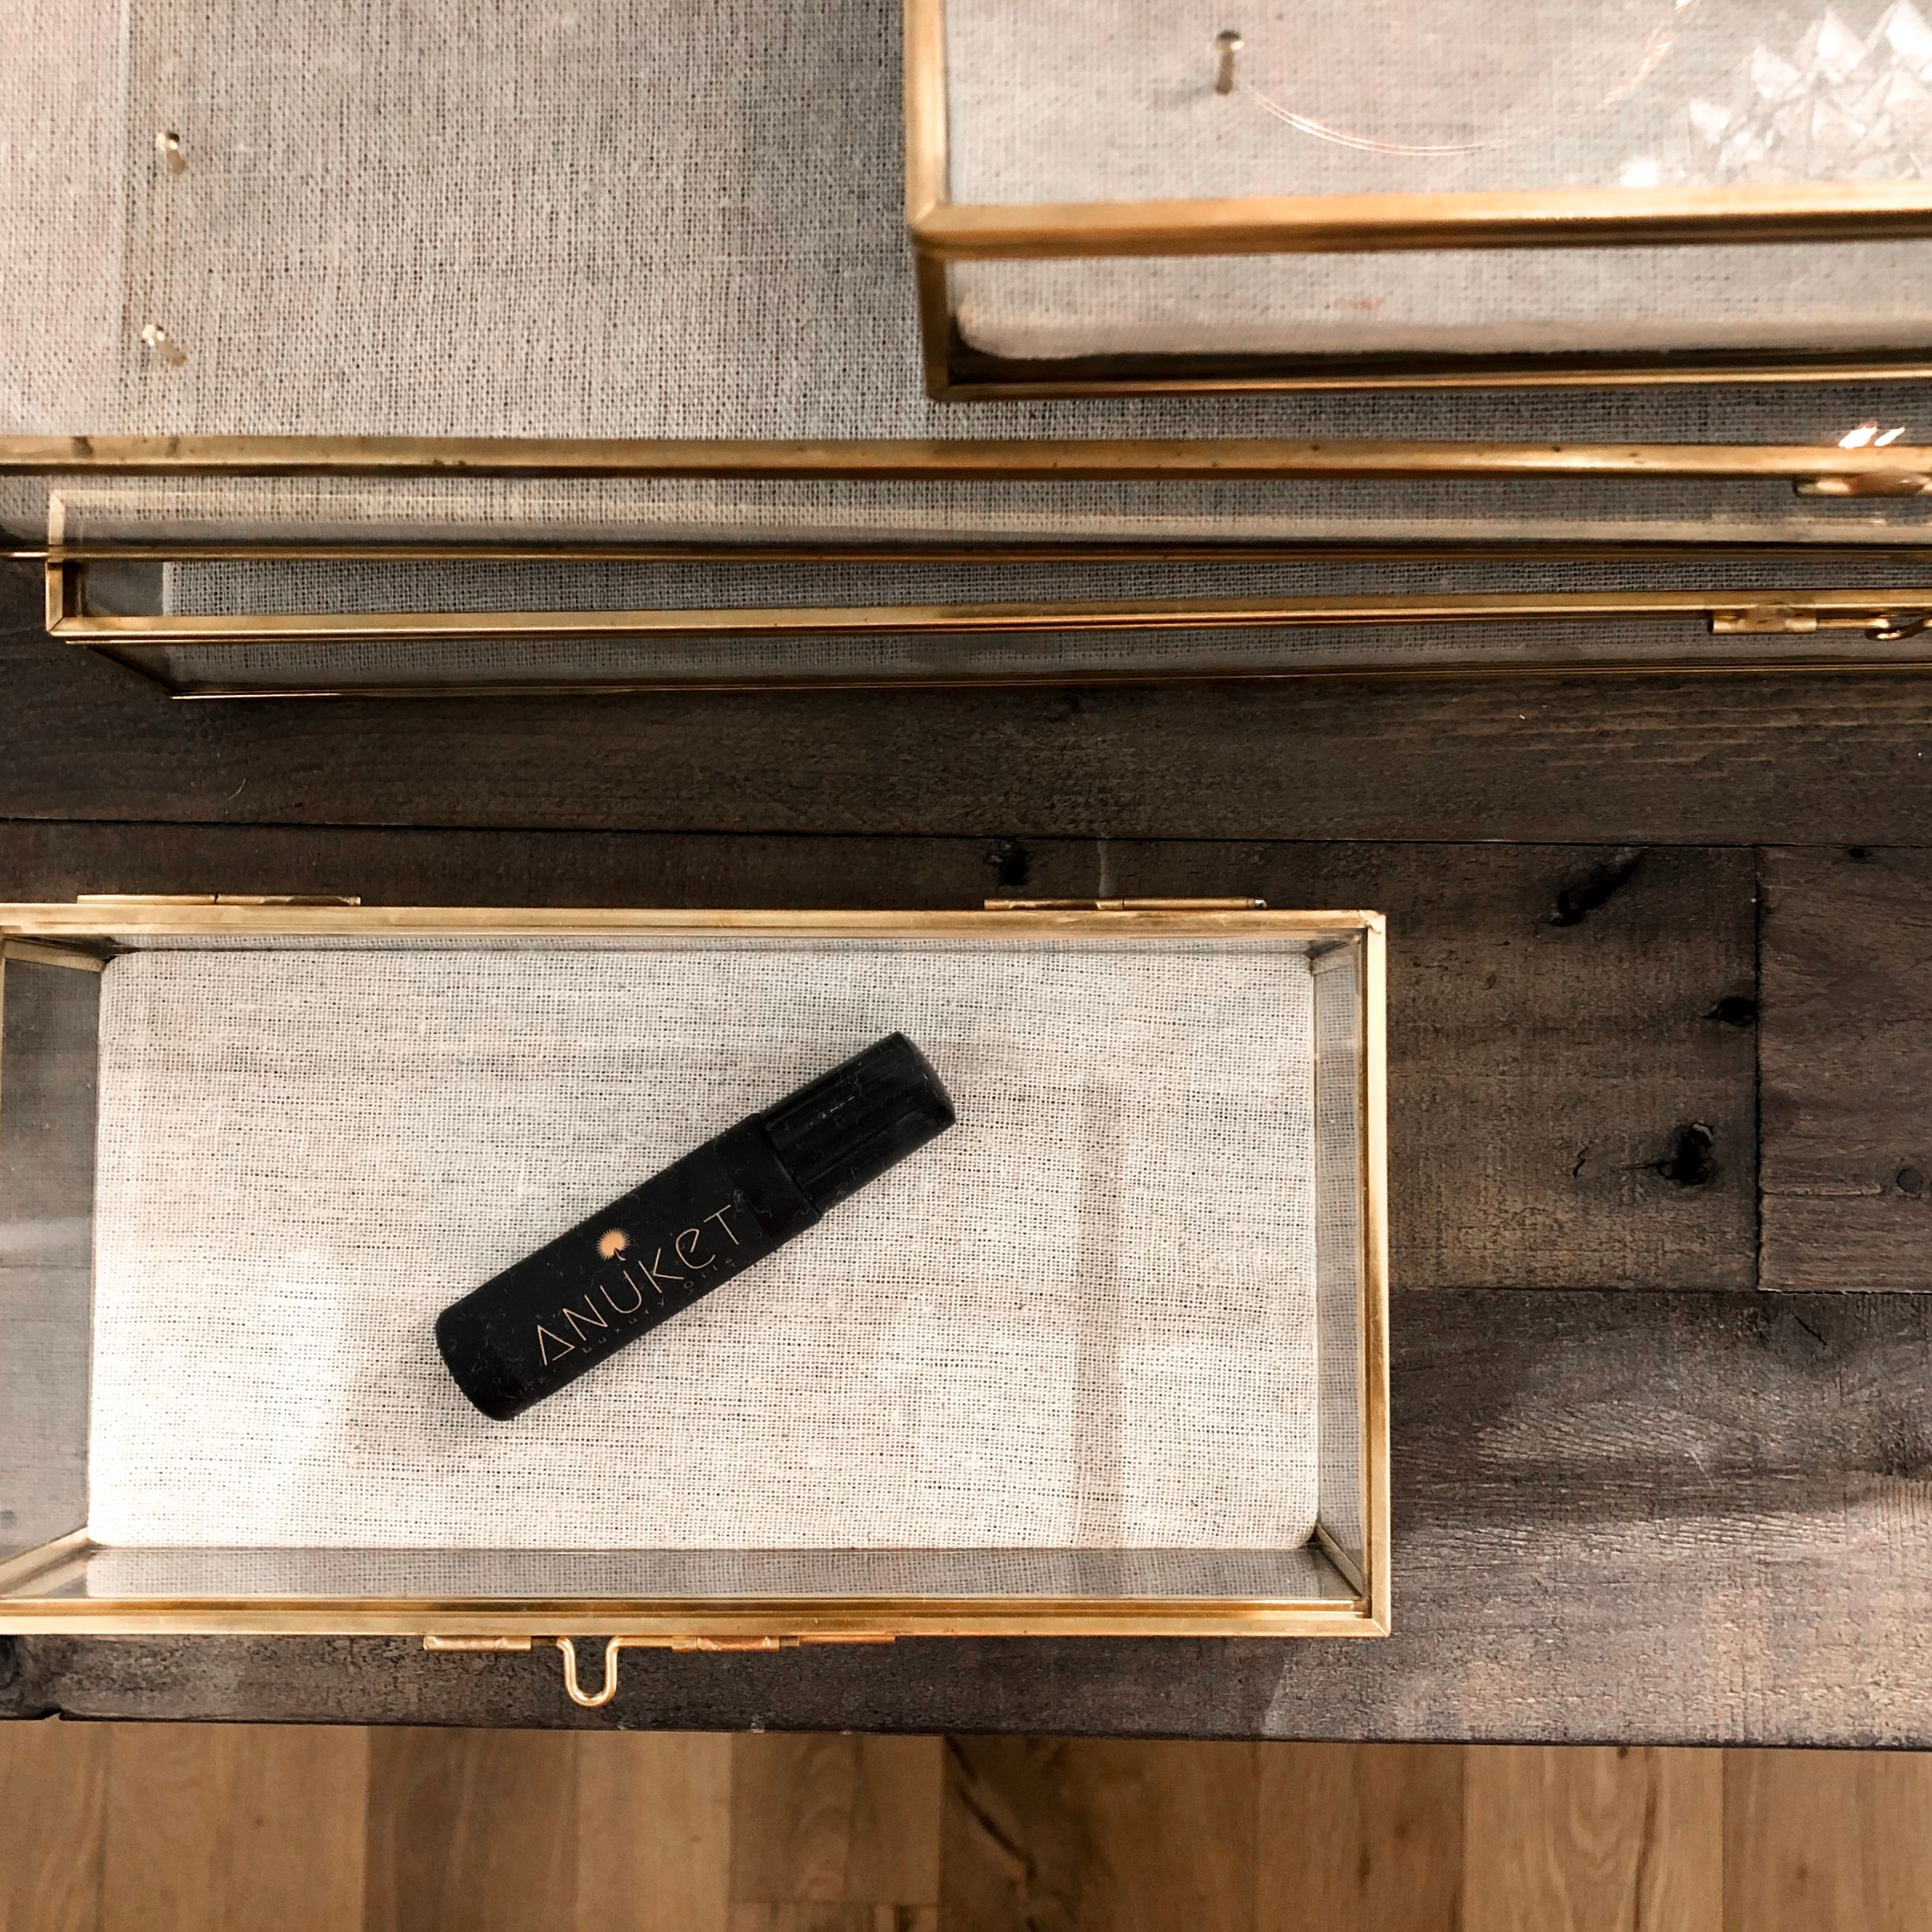 Bottle of essential oil fragrance by Anuket Luxury Oils in a glass box on a wooden tabletop